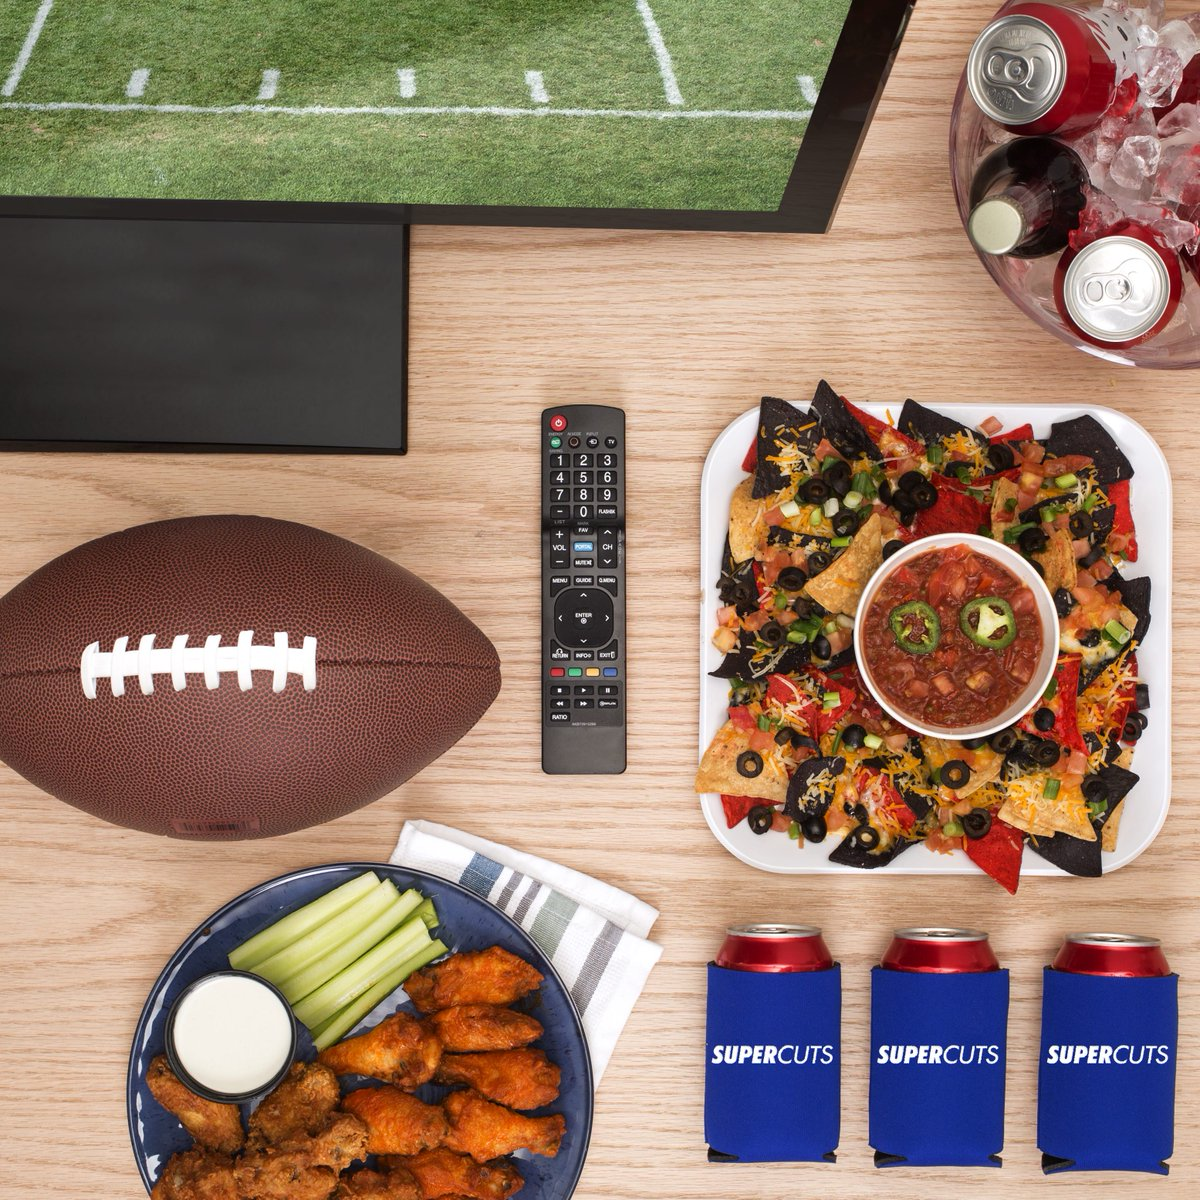 Don't want to decide between bowl games? RT & follow for a chance to #win a new TV and more! #Supercuts https://t.co/VlXXuLD8b4